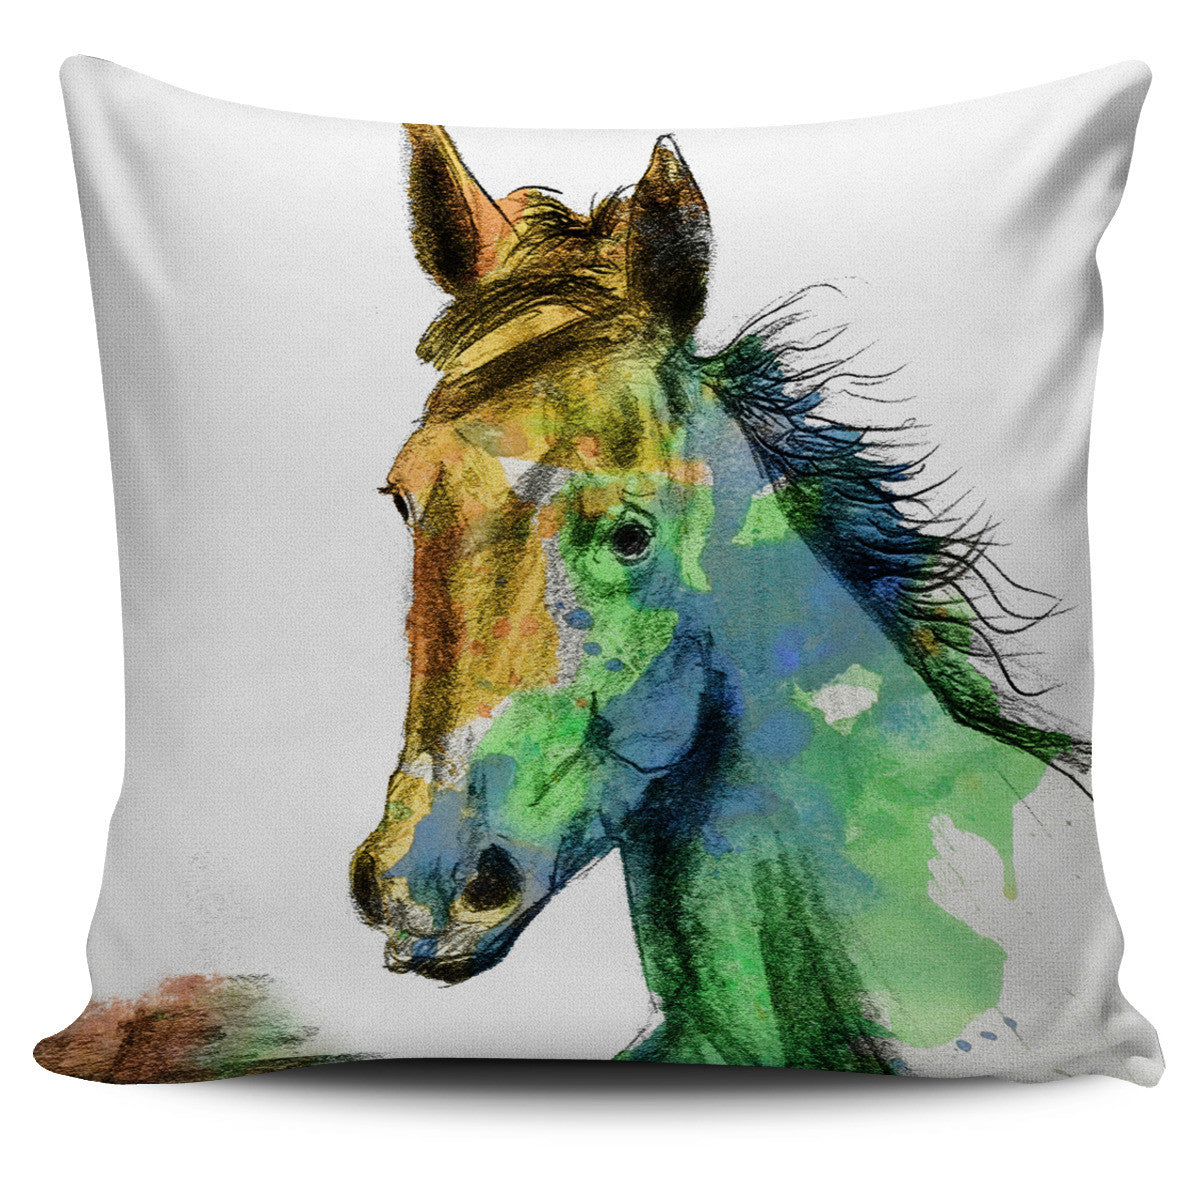 Horse Series I Pillow Covers - Hello Moa